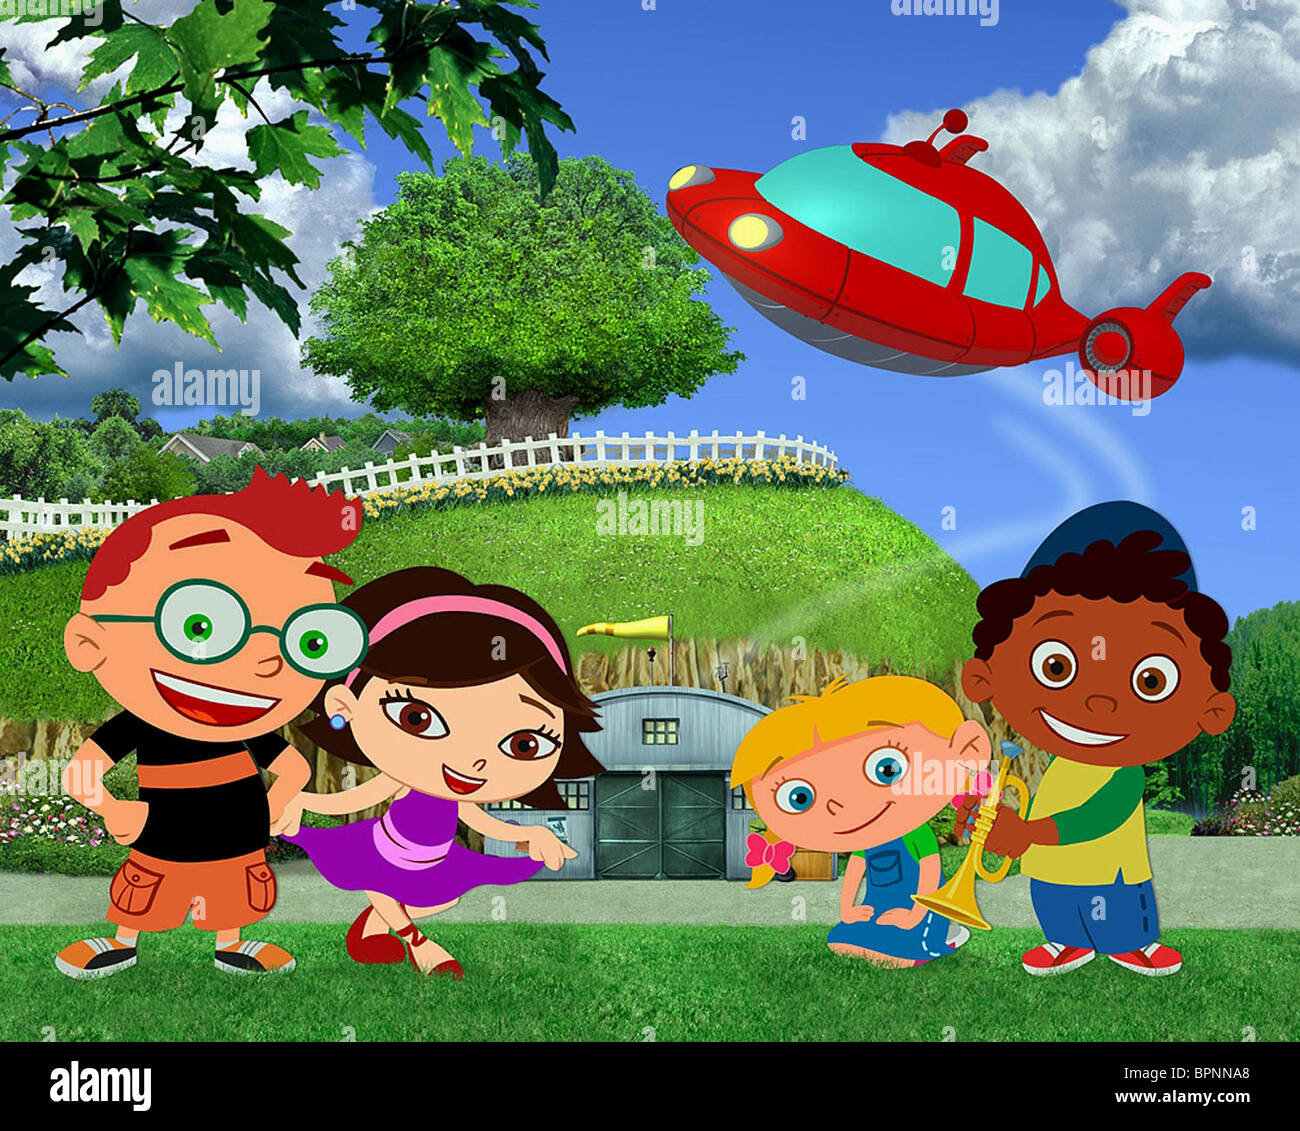 Uncategorized Quincy Little Einsteins leo june annie quincy rocket disneys little einsteins our big huge adventure 2005